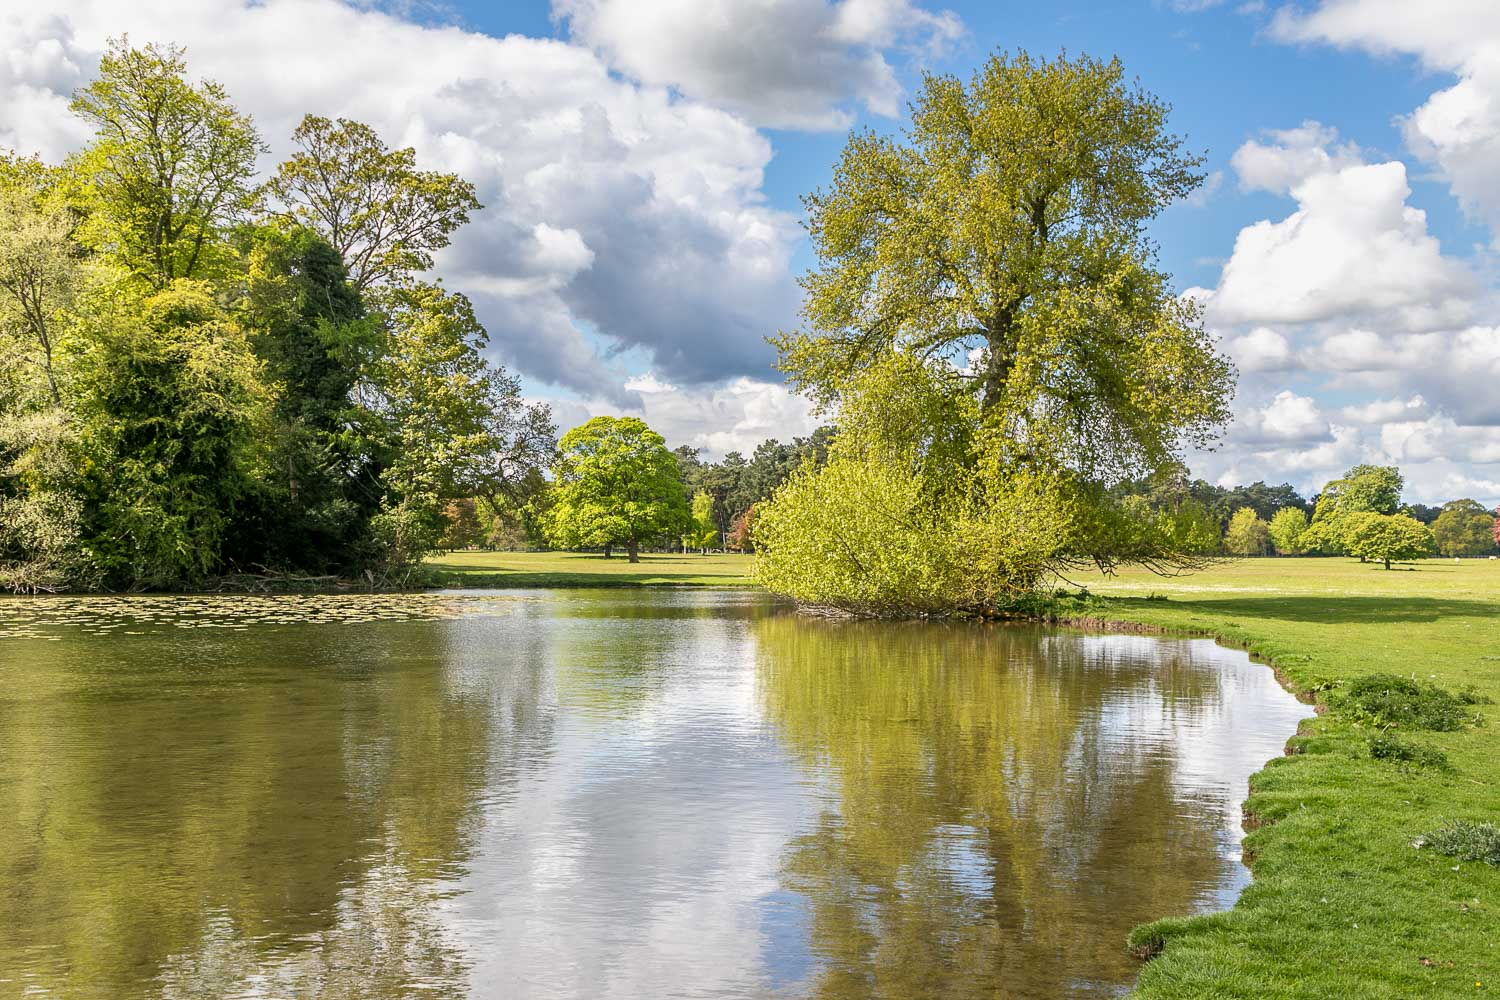 Scampston Hall lake, Capability Brown